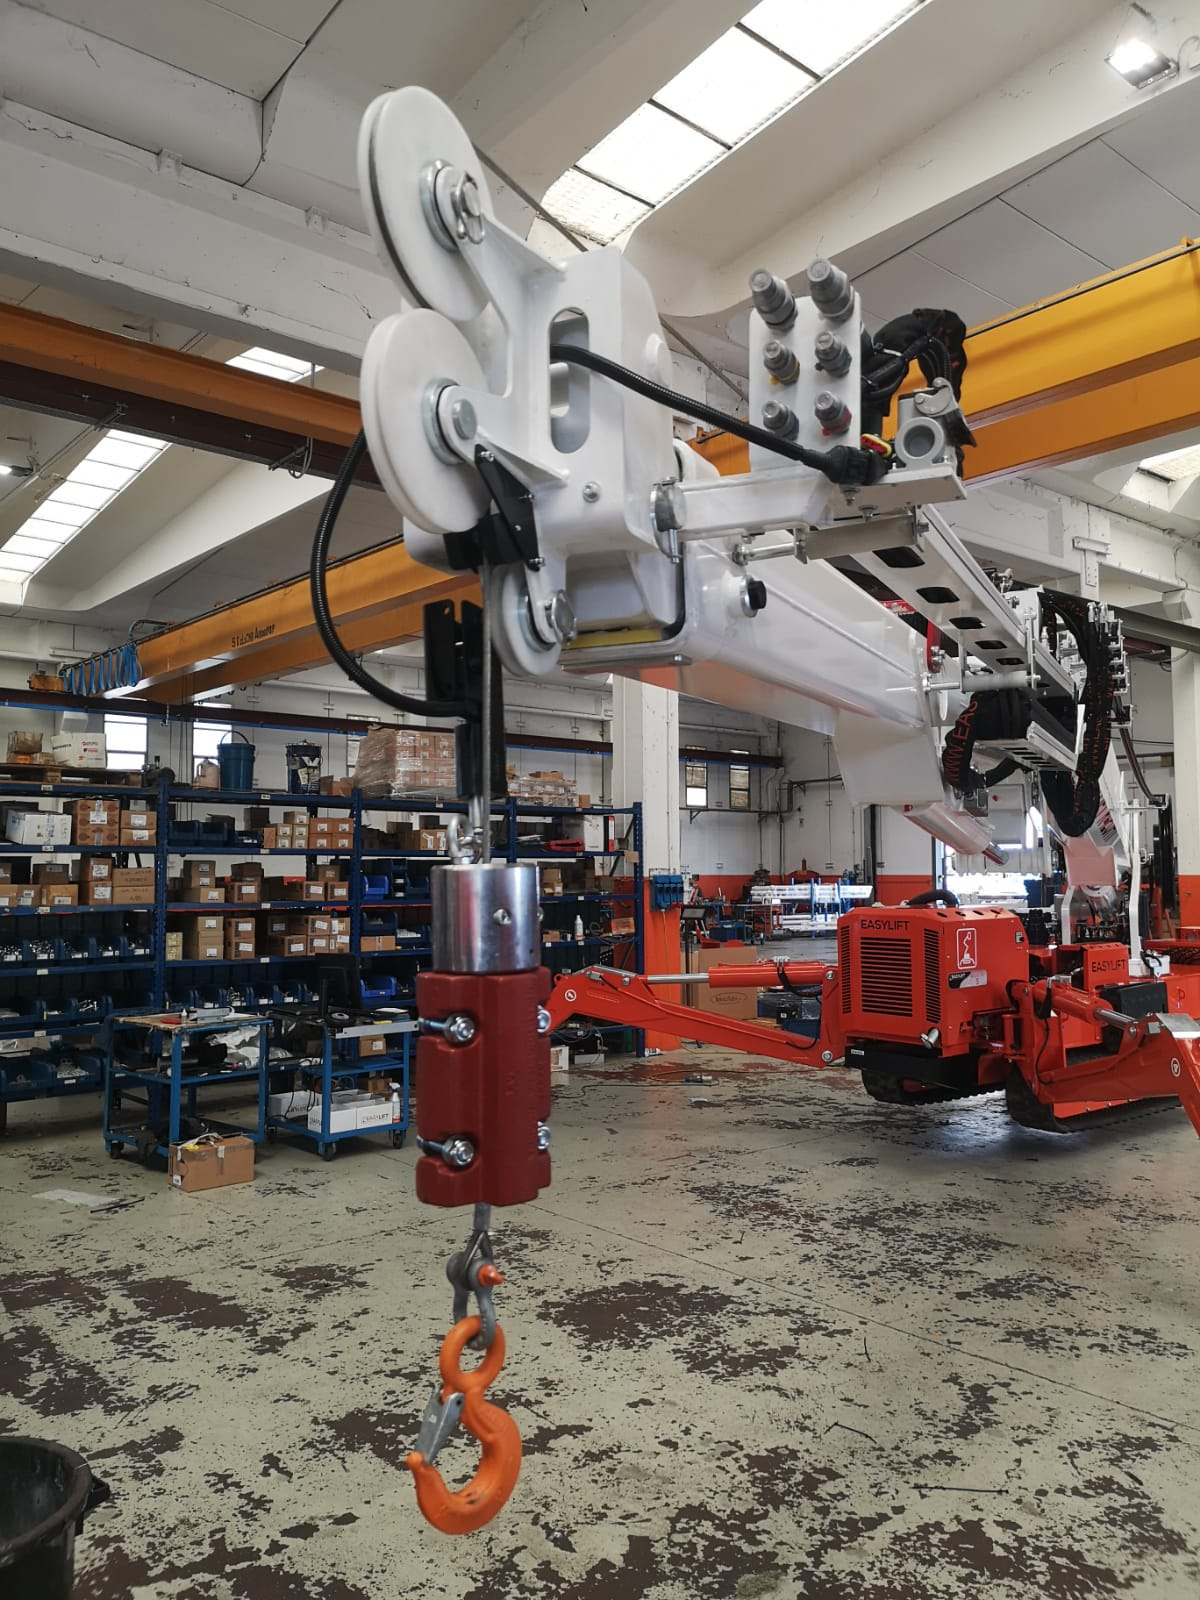 Telescopic spiders with the winch become cranes